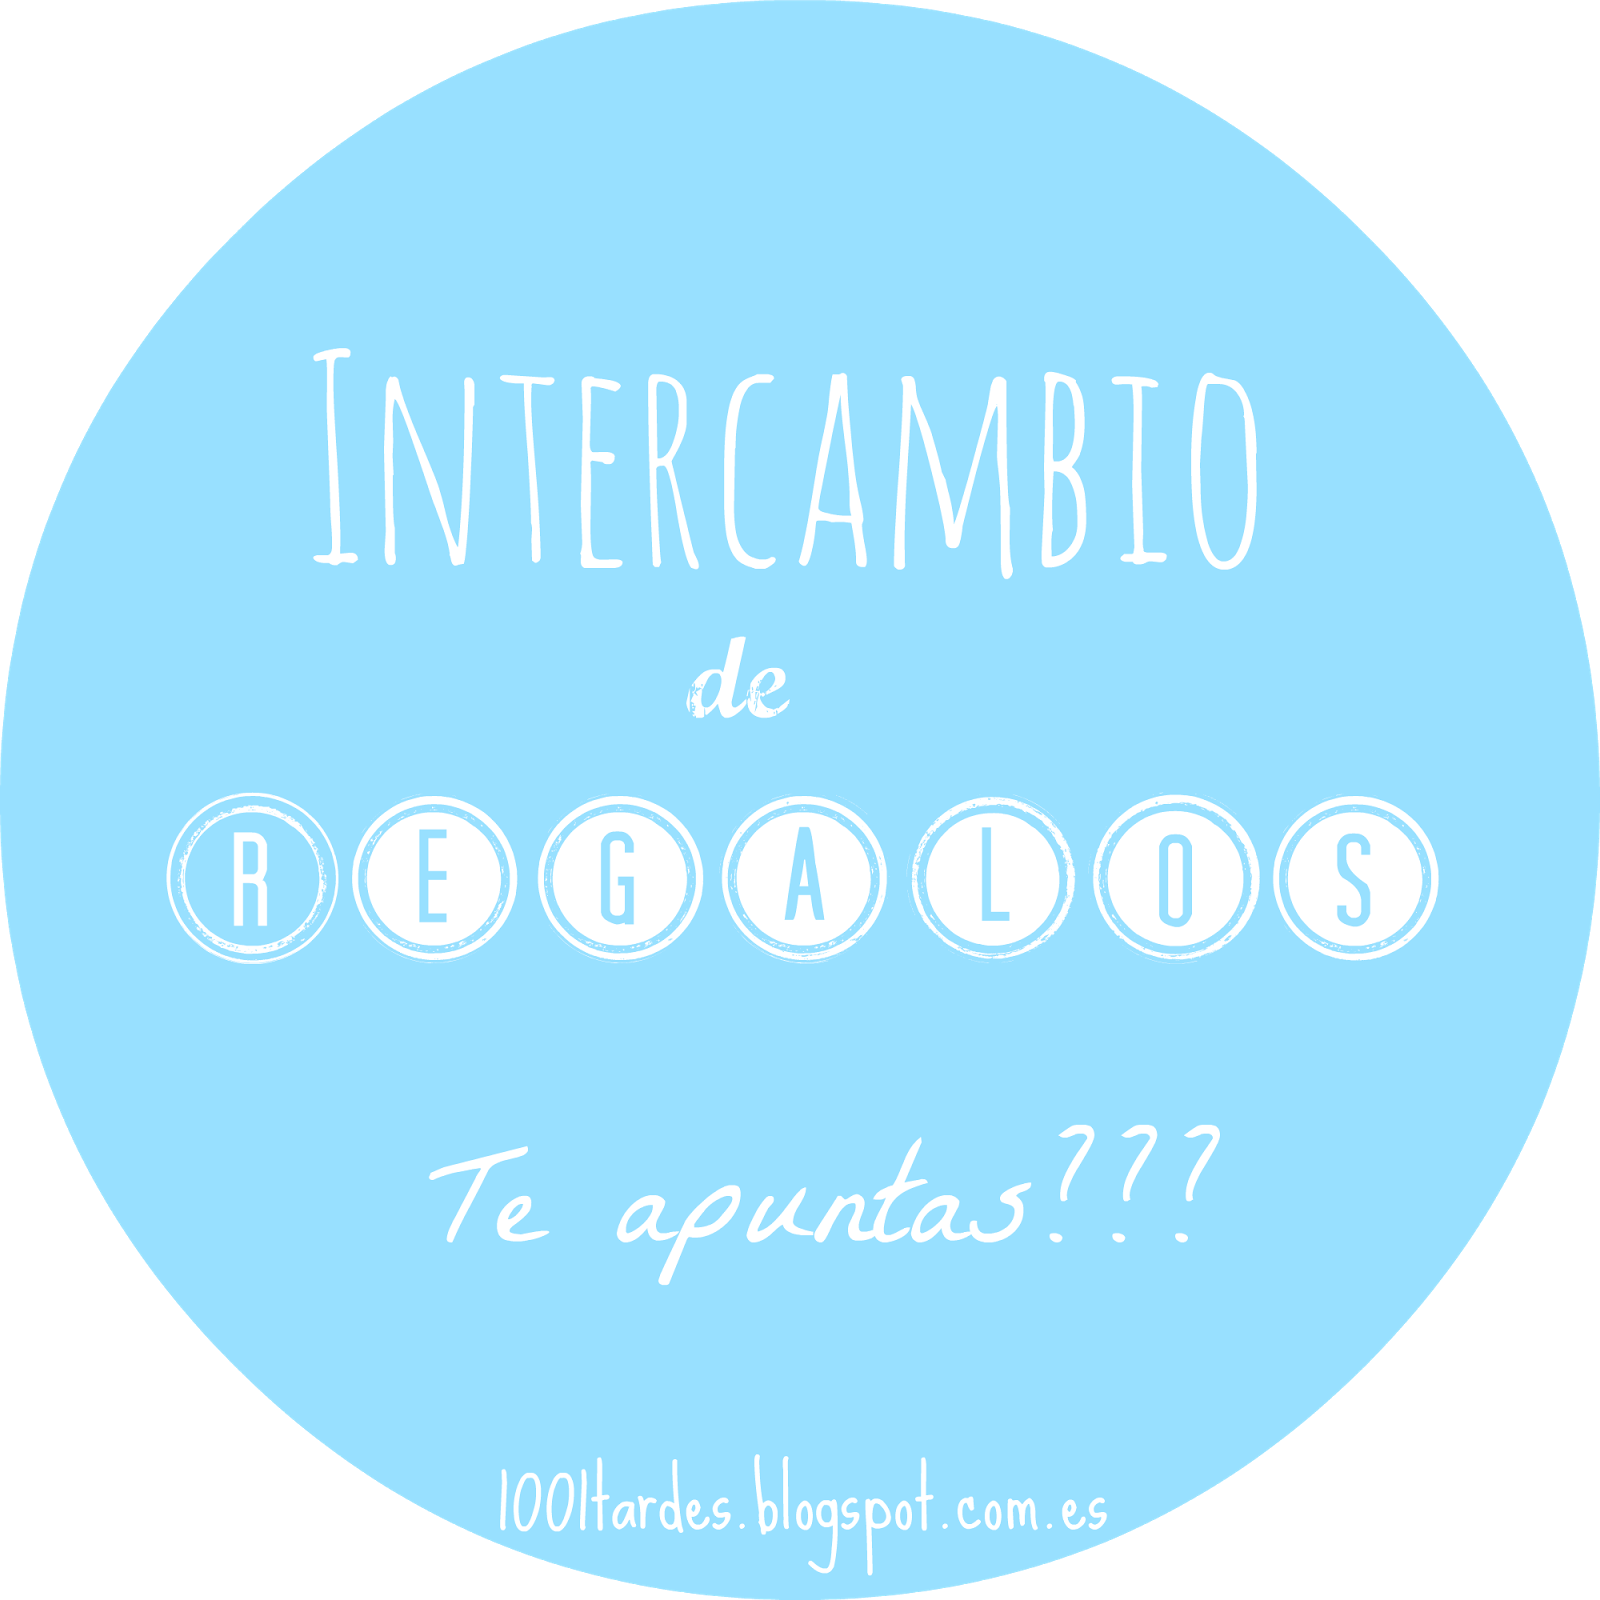 intercamvi 21  abril